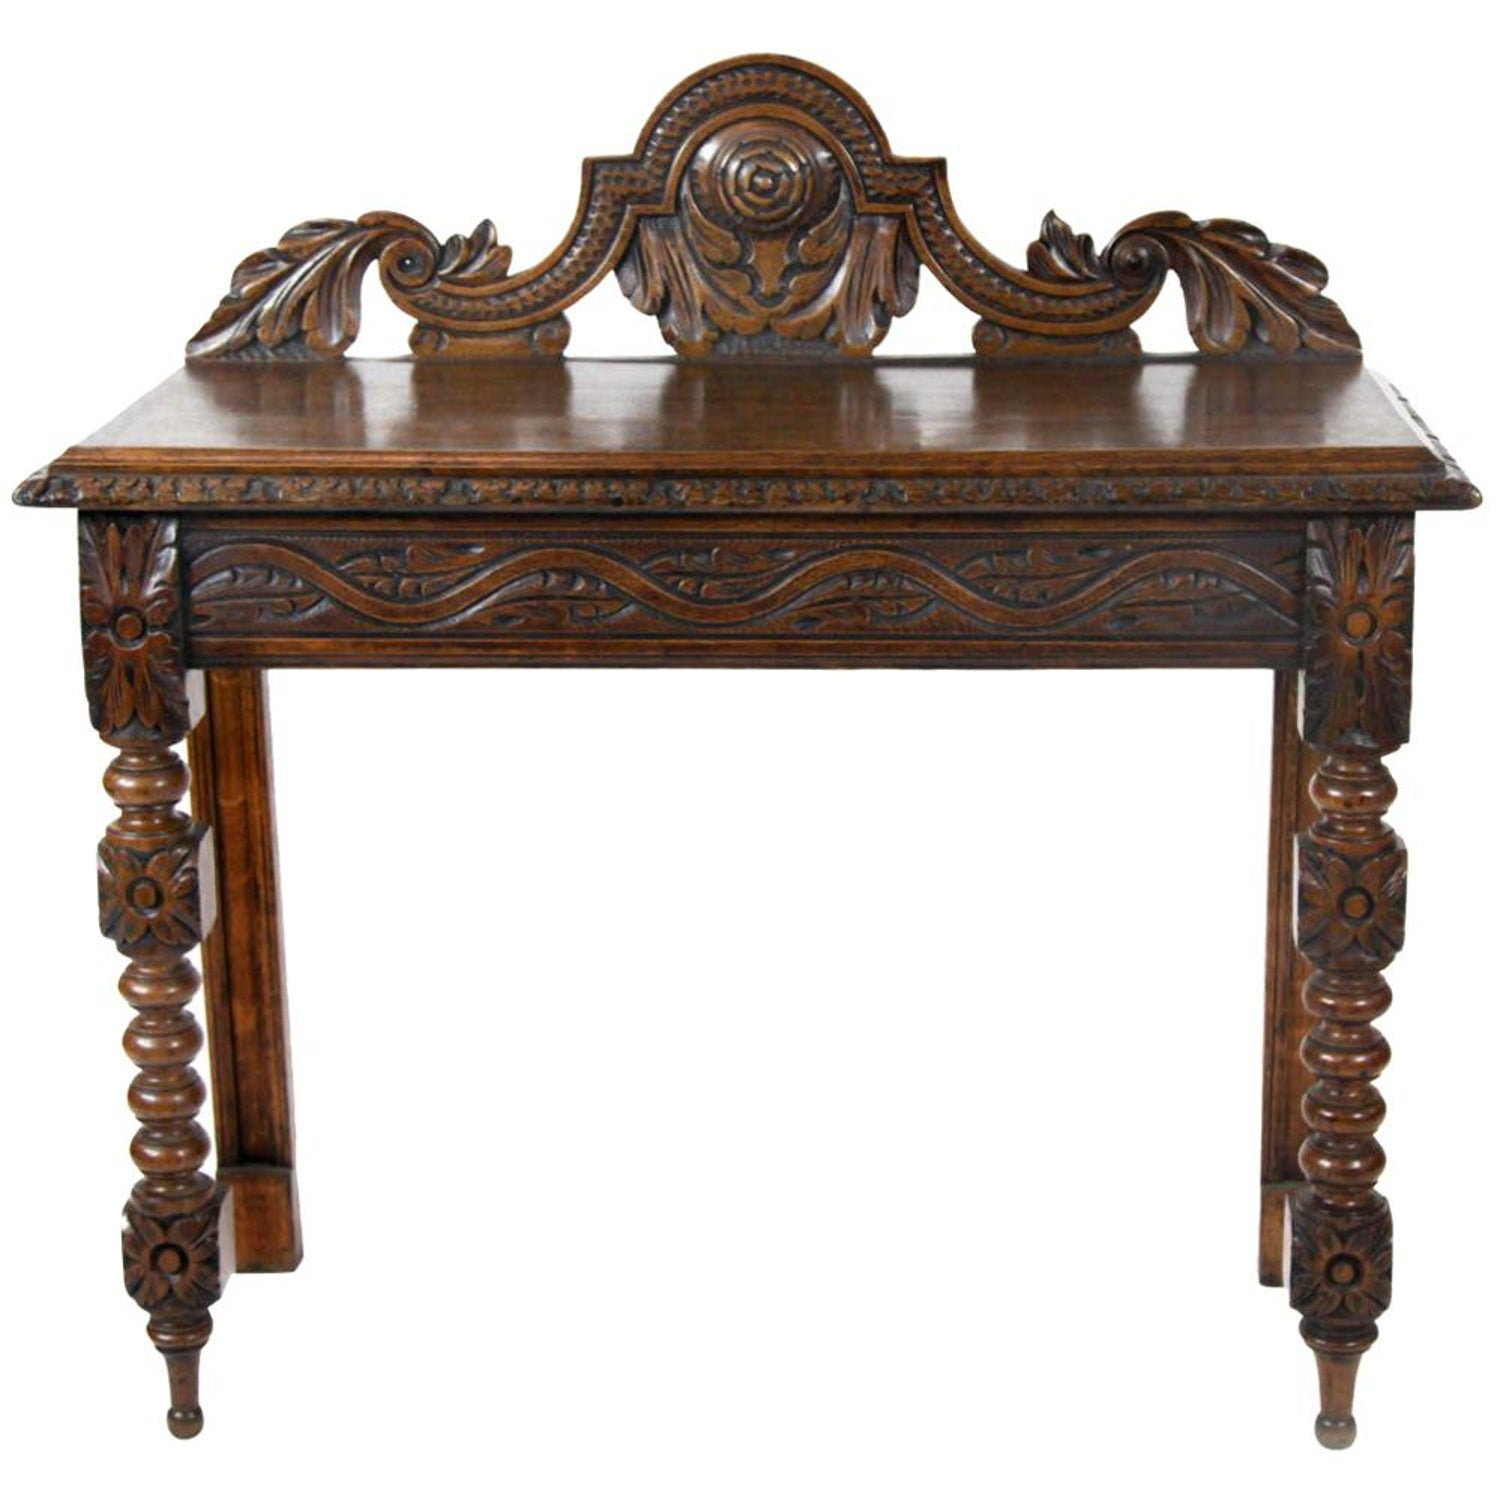 Remarkable Jacobean Tables 64 For Sale At 1Stdibs Ibusinesslaw Wood Chair Design Ideas Ibusinesslaworg